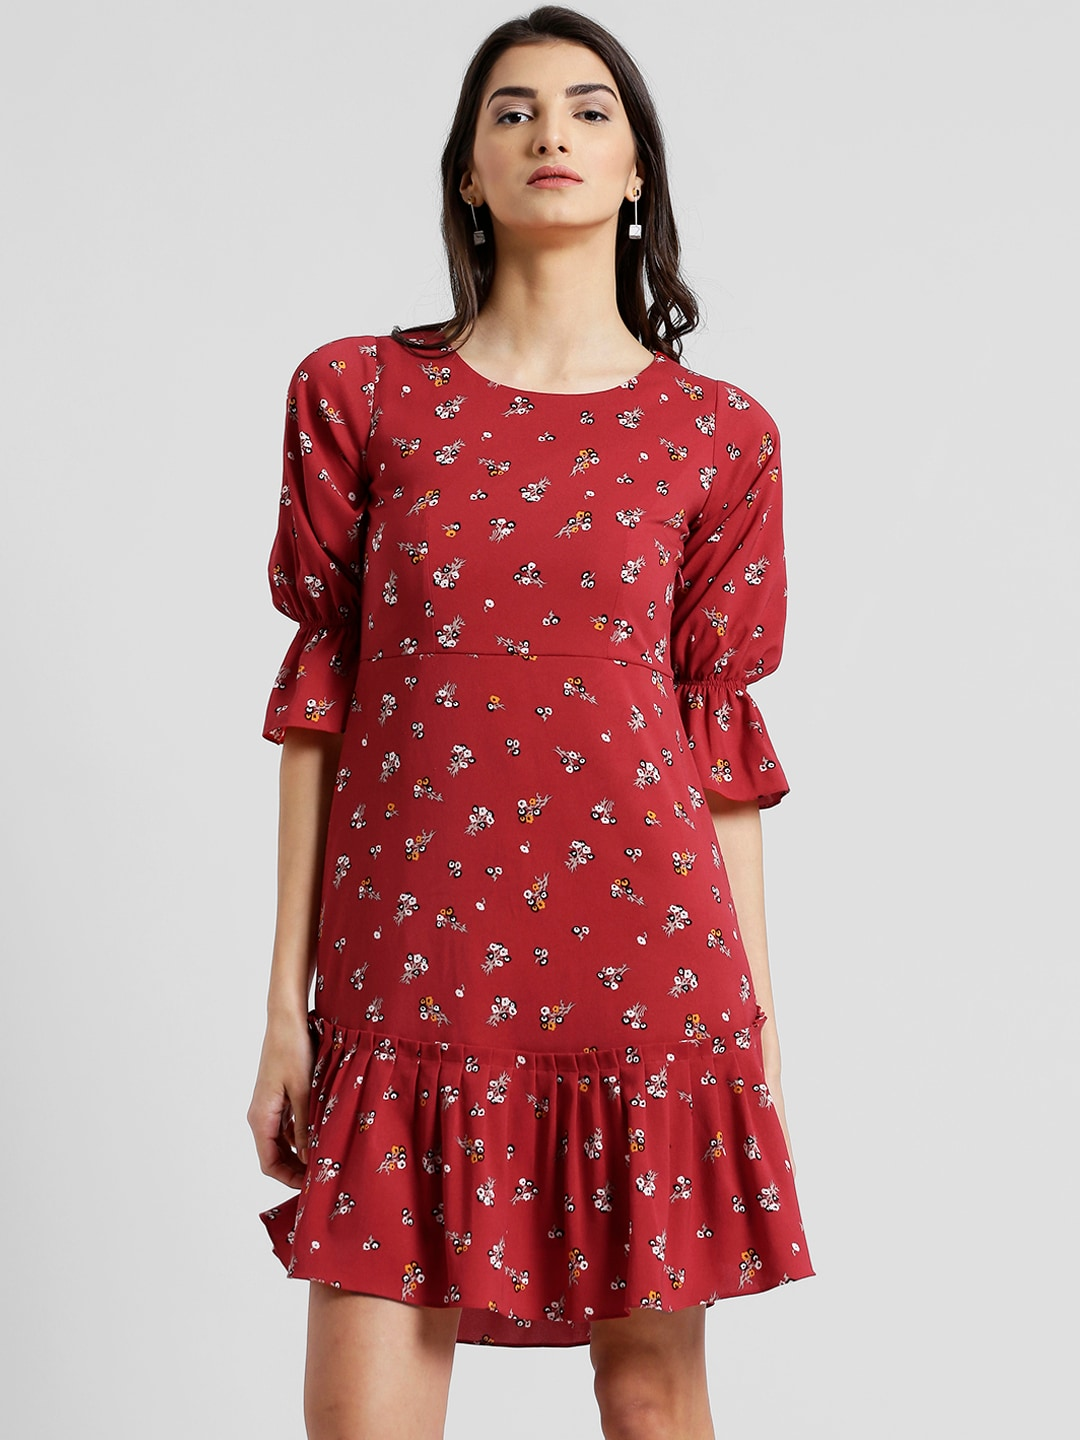 d415e5cbd3 Zink London Dress - Buy Zink London Dress online in India